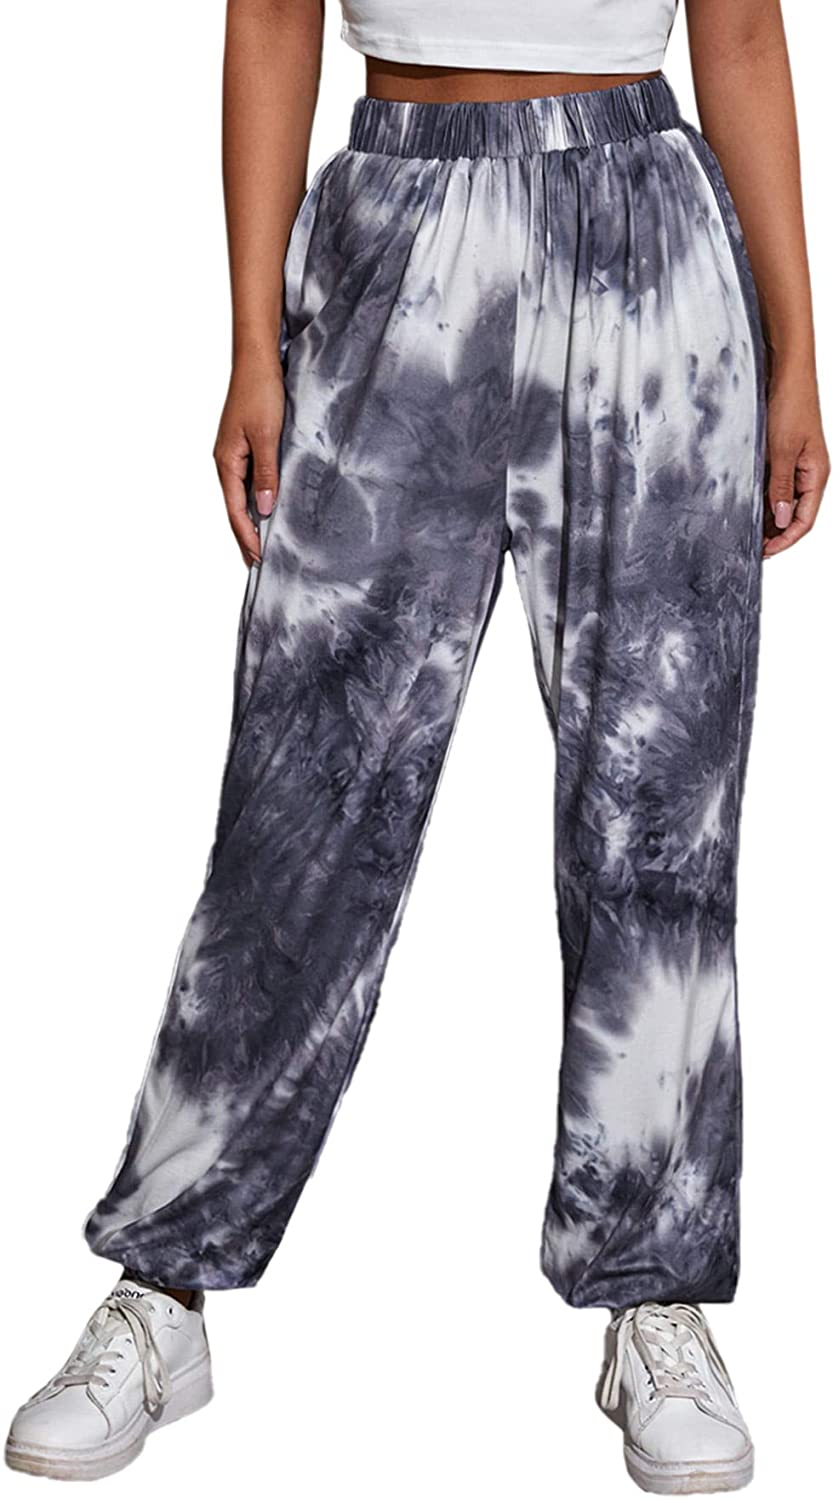 SweatyRocks Women's Juniors Soft Jogger Sweatpants Tie Dye Drawstring Pants with Pockets